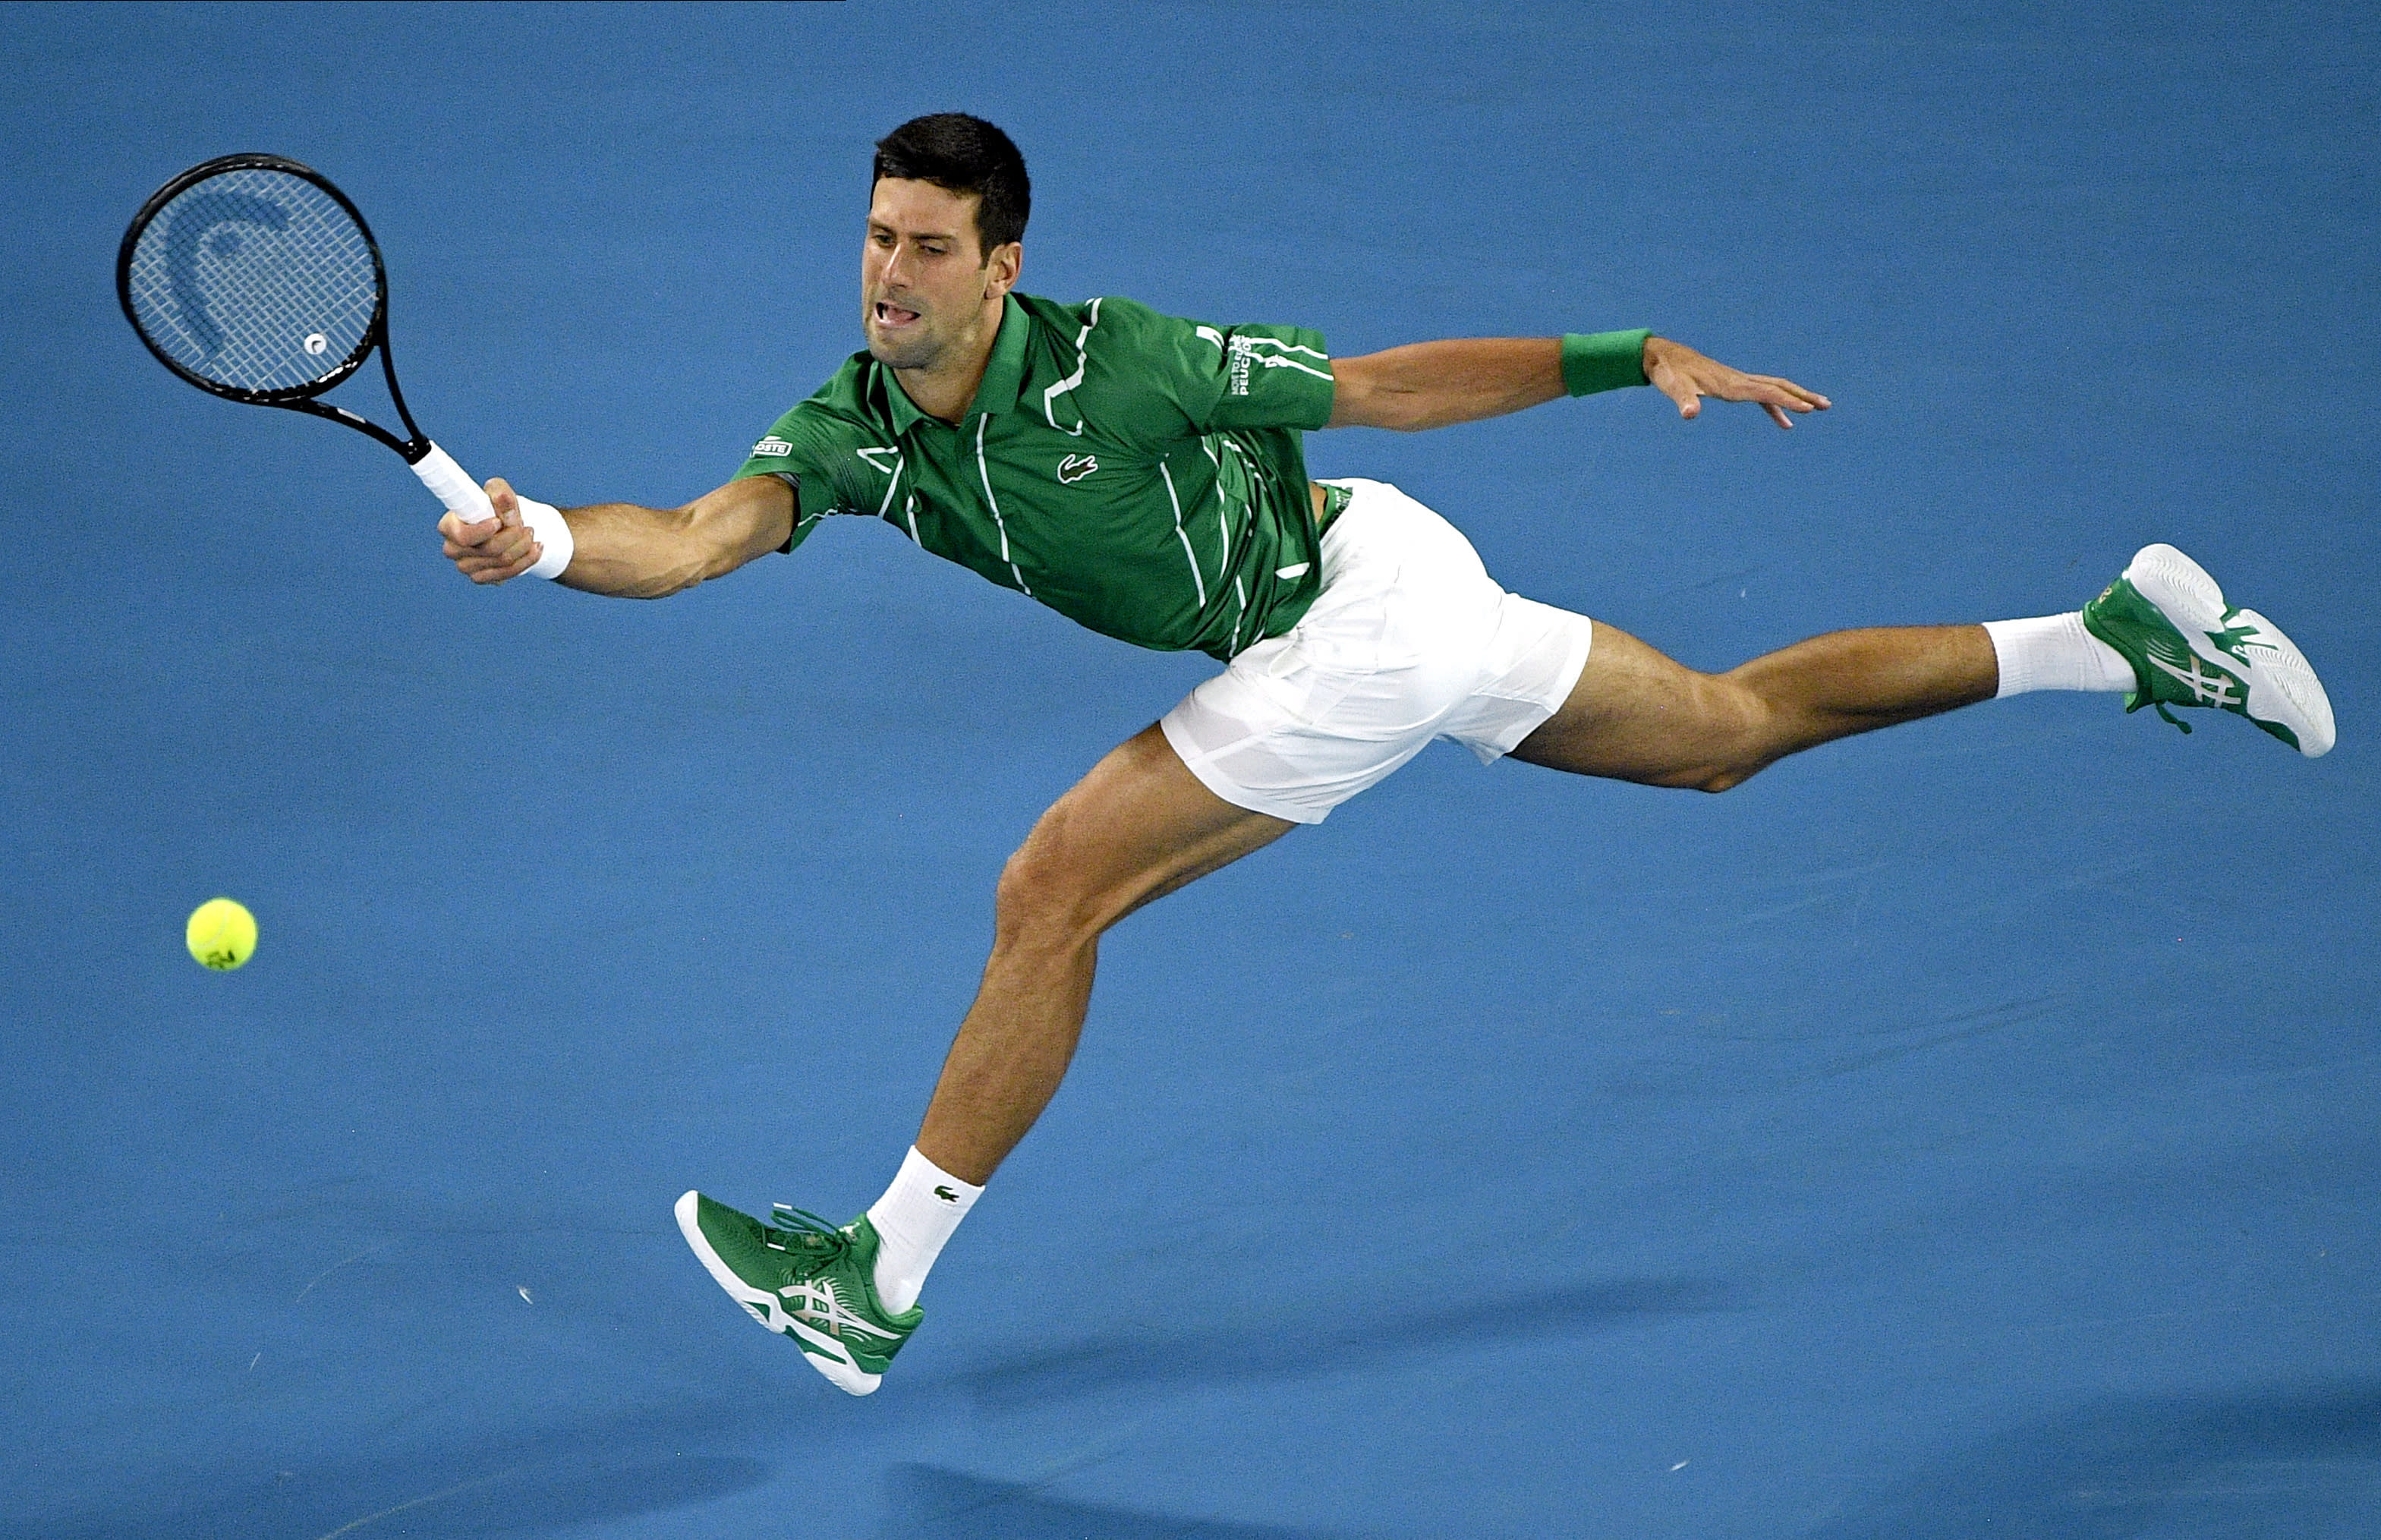 FILE - In this Monday, Jan. 20, 2020, file photo, Serbia's Novak Djokovic makes a forehand return to Germany's Jan-Lennard Struff during their first round singles match the Australian Open tennis championship in Melbourne, Australia. Djokovic is scheduled to play in the U.S. Open, scheduled for Aug. 31-Sept. 13, 2020. (AP Photo/Andy Brownbill, File)